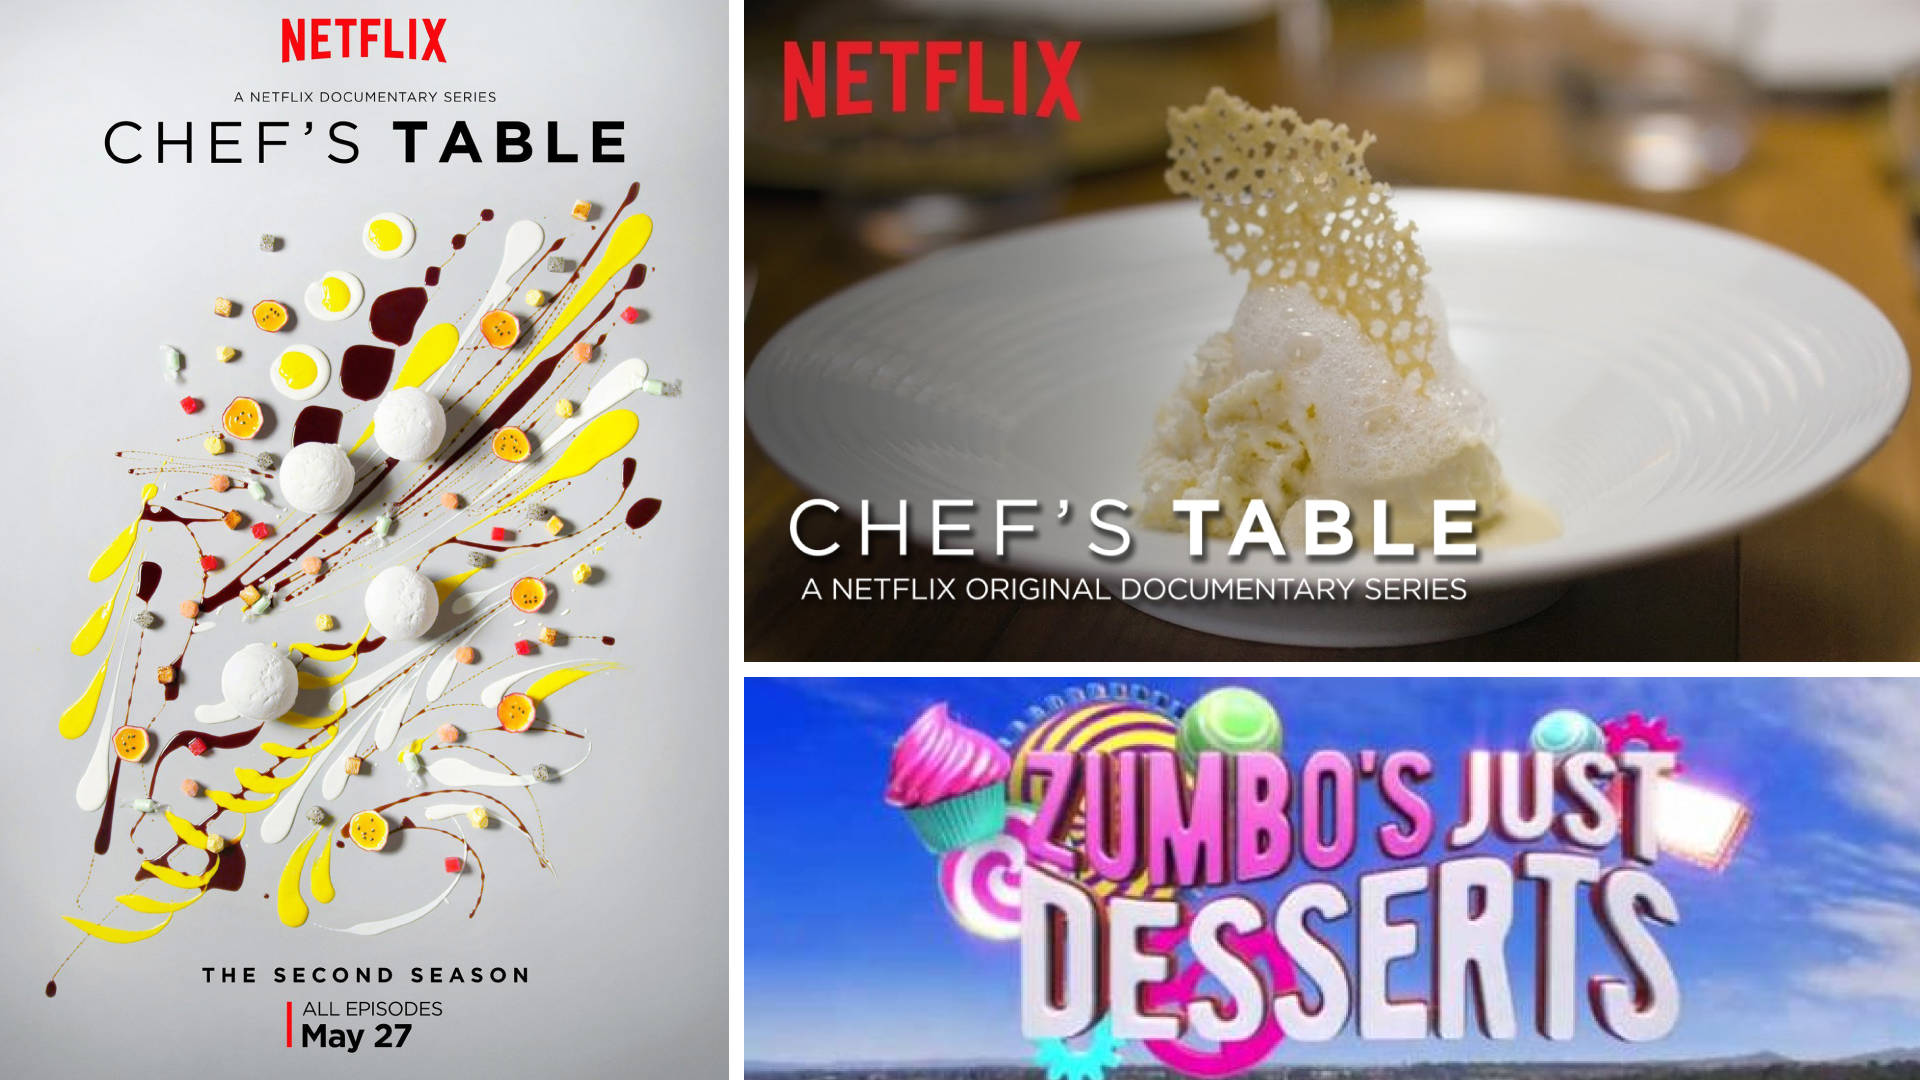 Chef's Table and Zumbo's Just Desserts